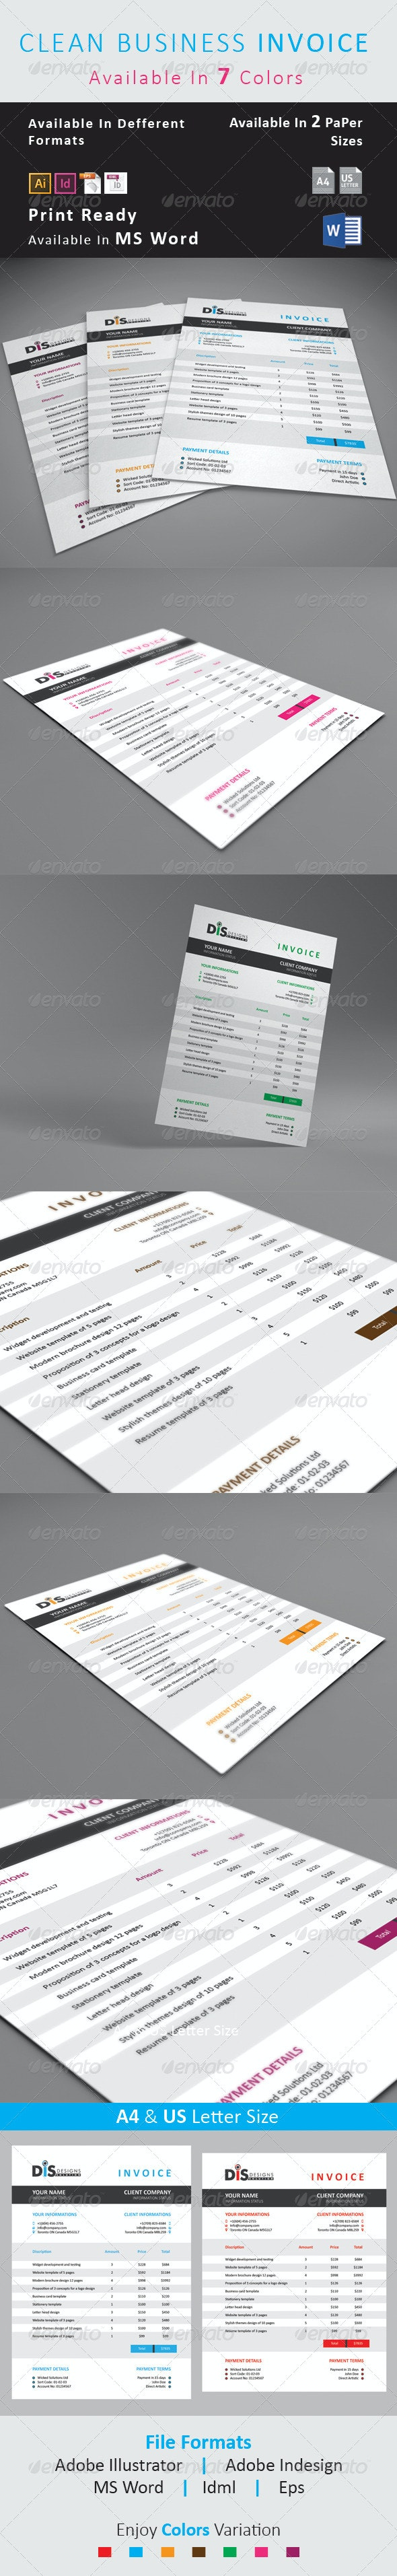 Business Invoice - Proposals & Invoices Stationery